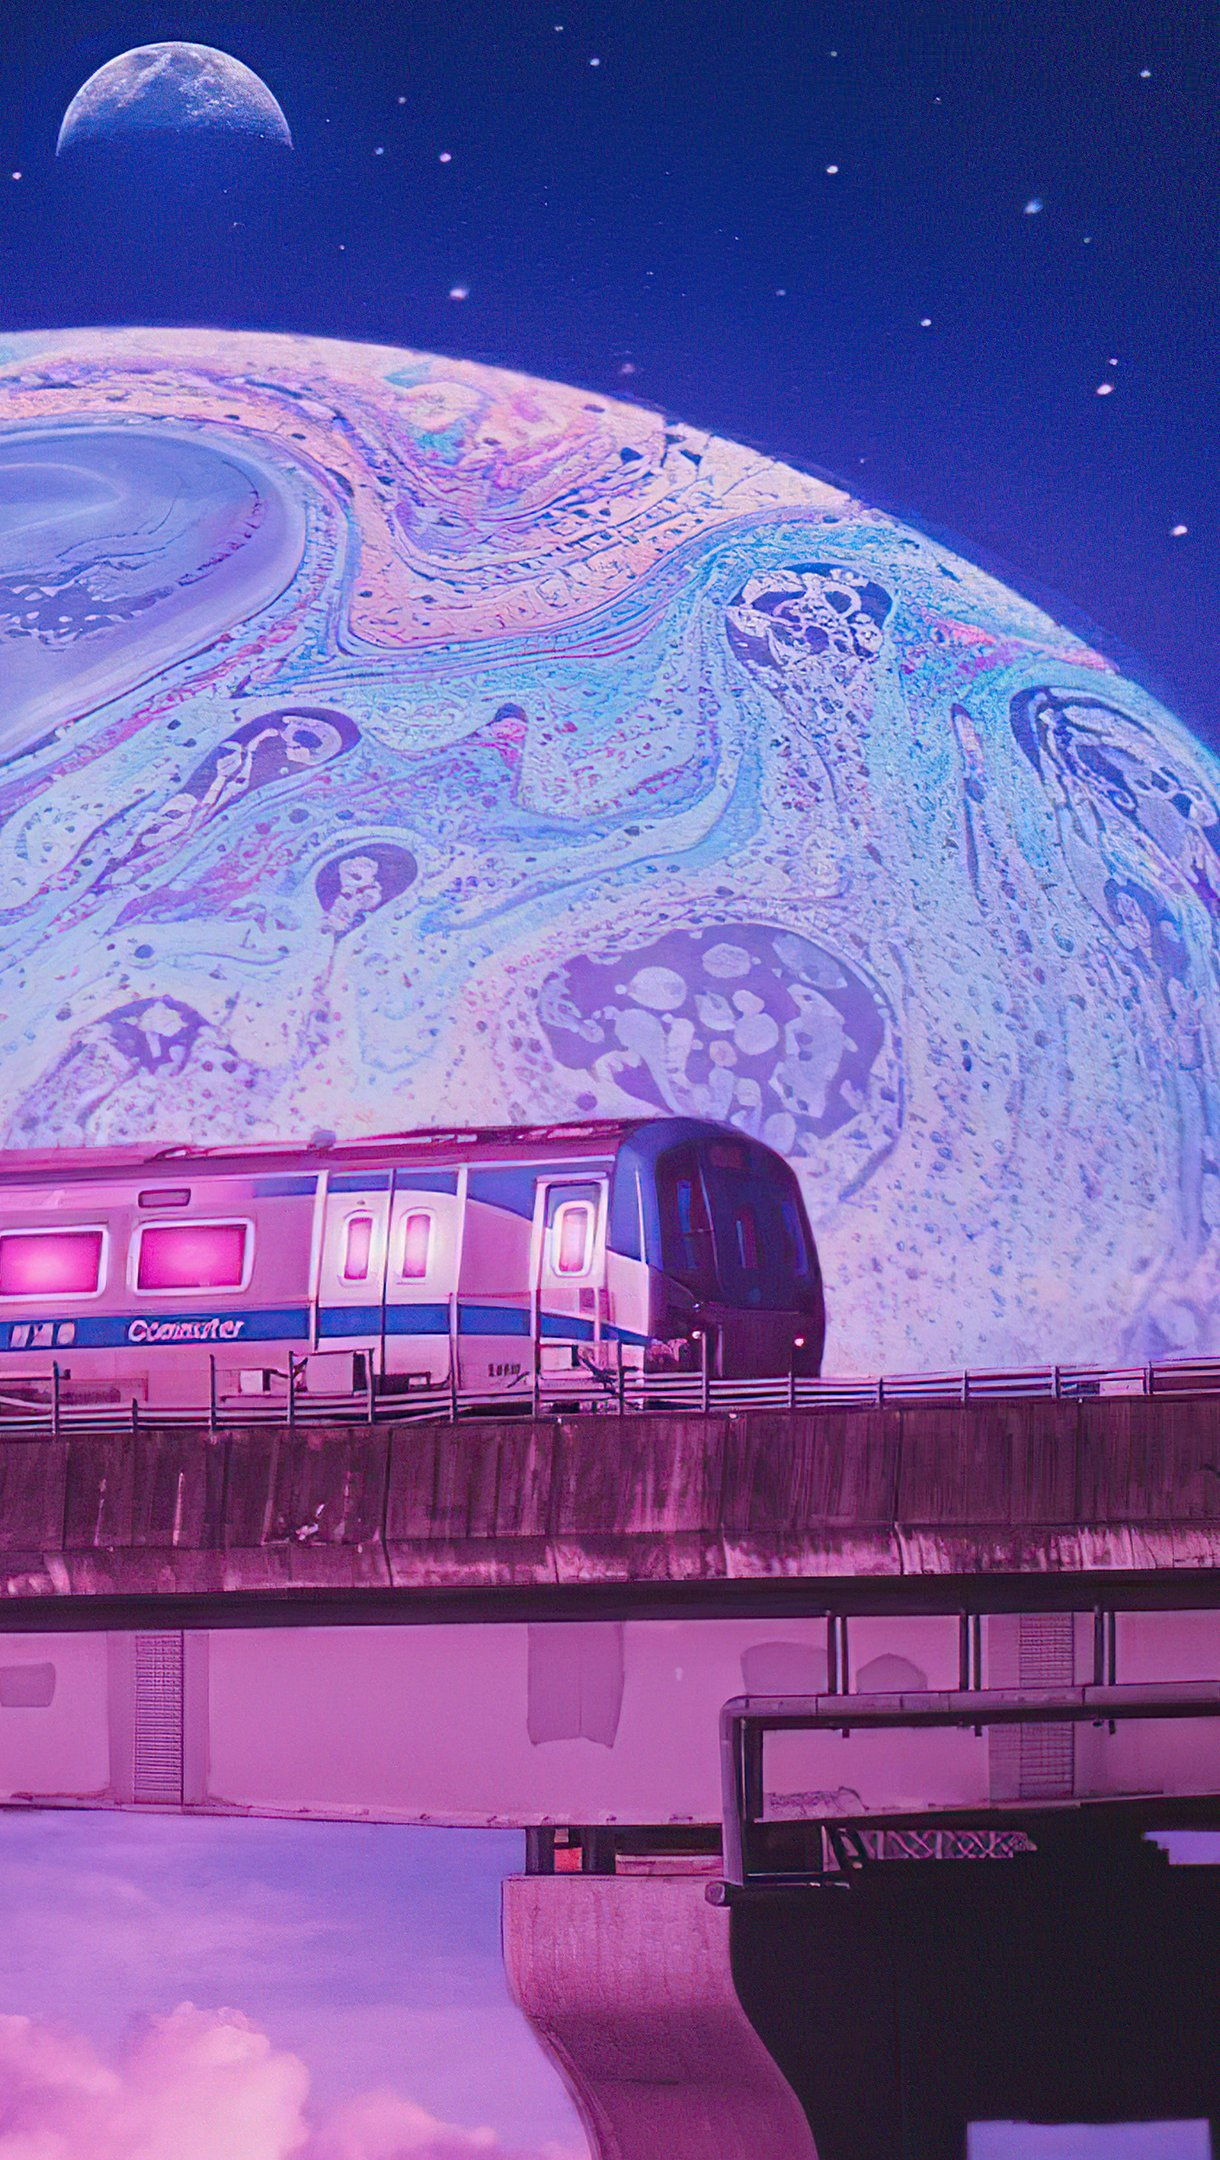 Wallpaper Train outside this planet Vertical